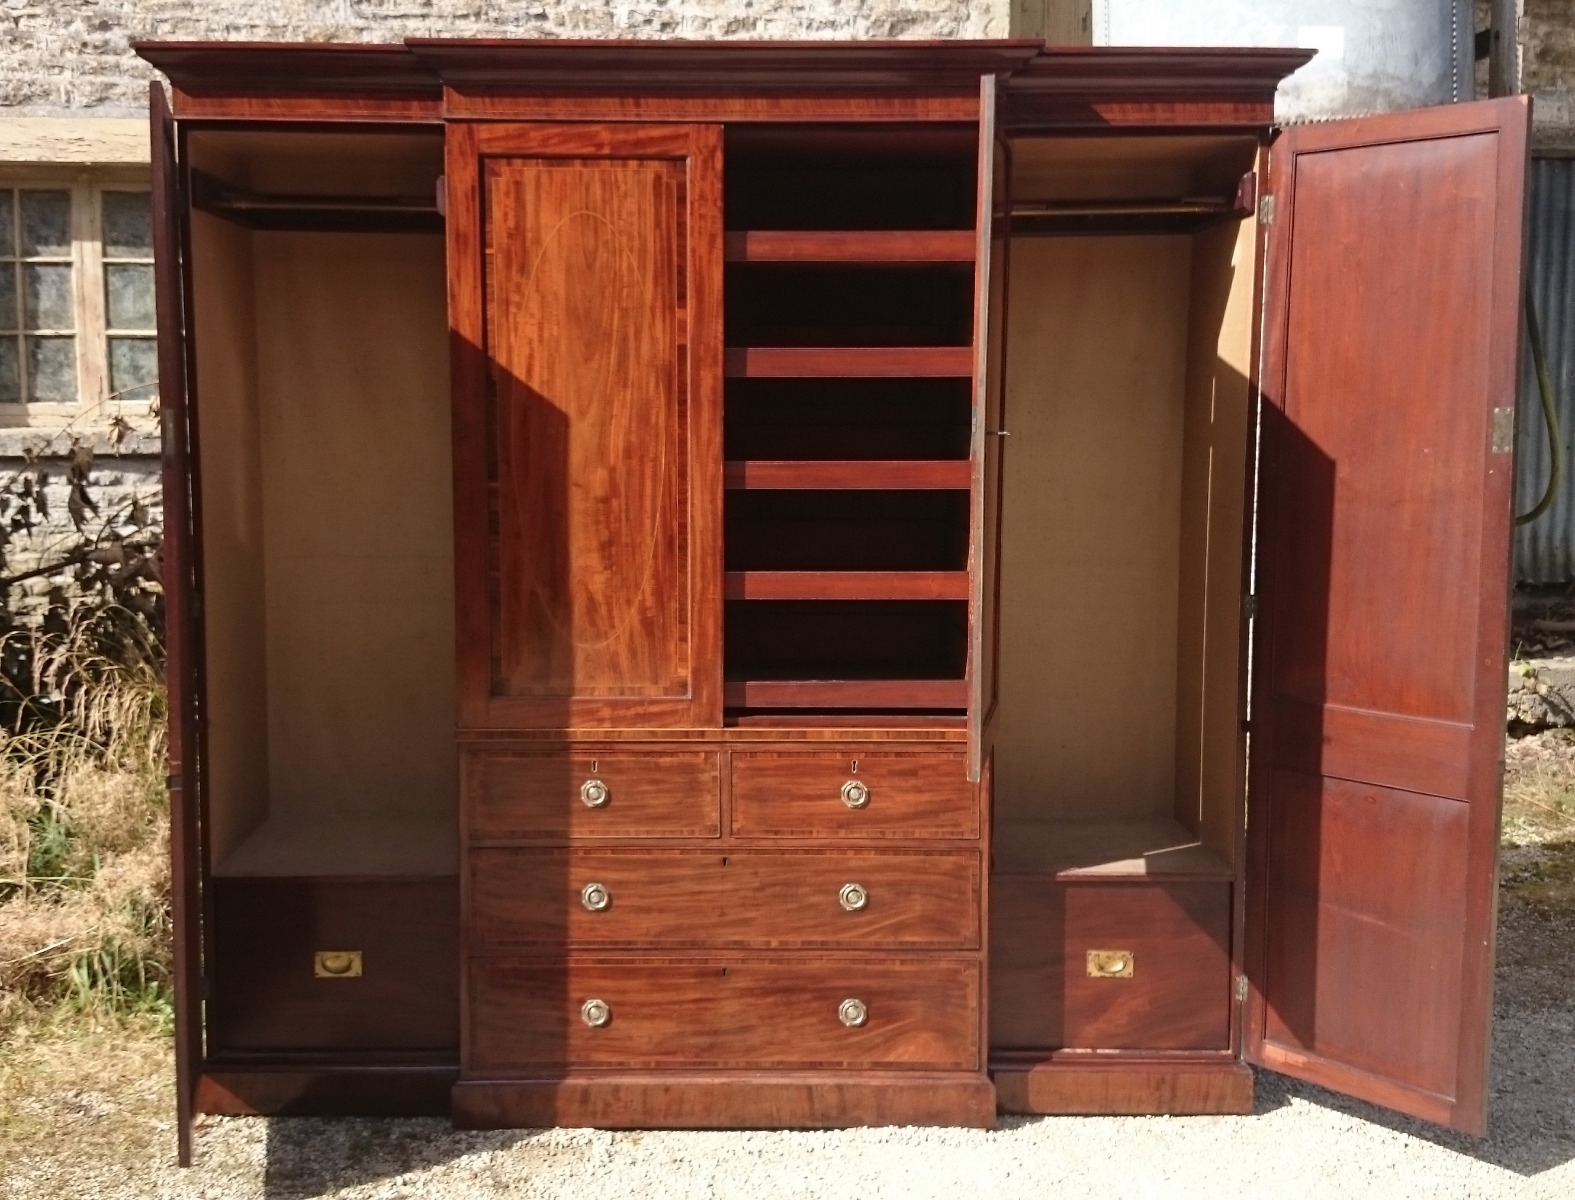 Antique Wardrobe Linen Presses Hares Antiques With Regard To Breakfront Wardrobe (View 3 of 15)